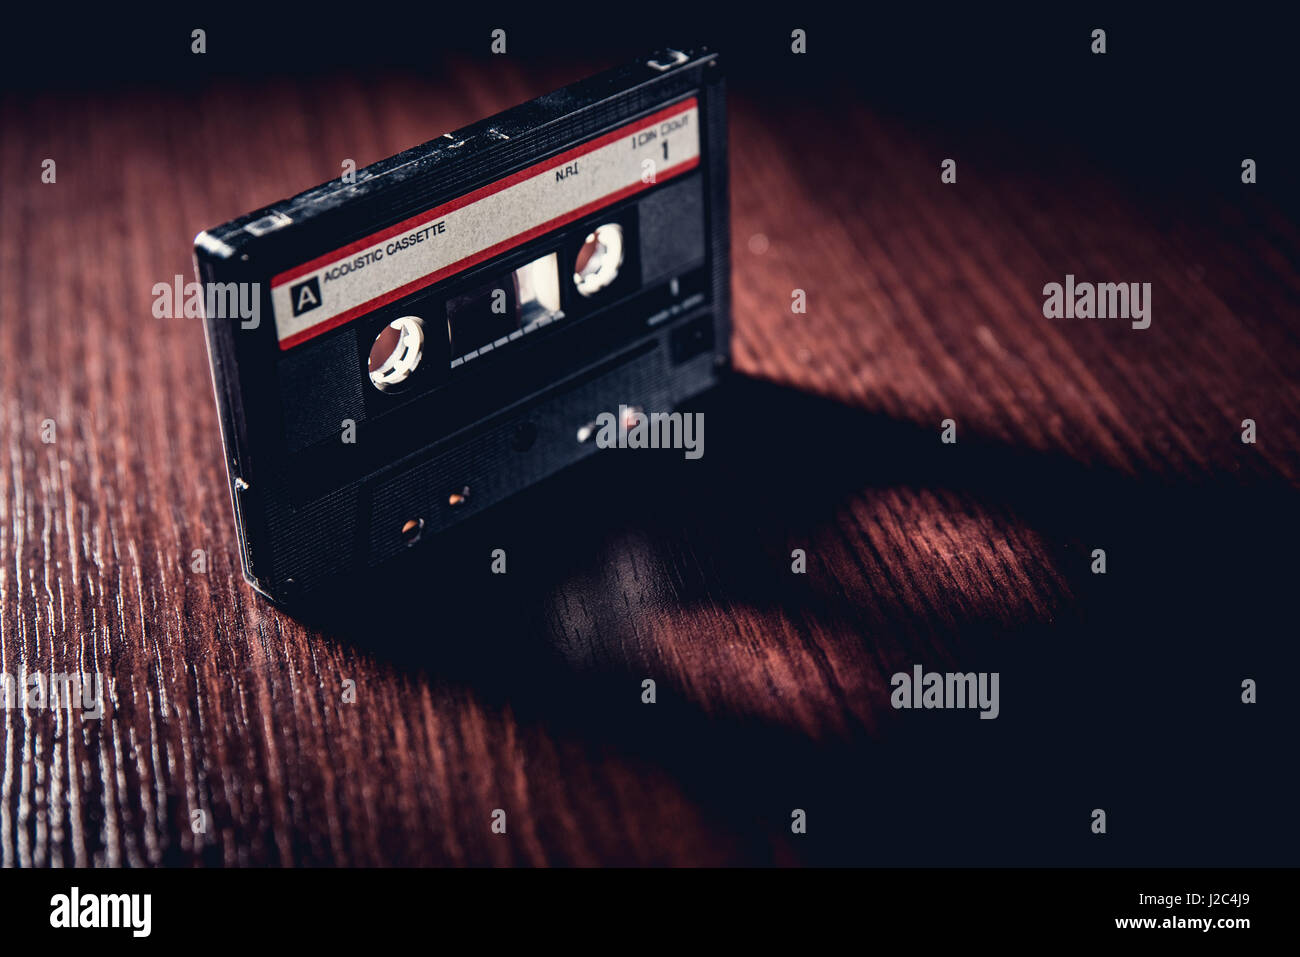 Old-fashioned cassette tape on the dark surface - Stock Image